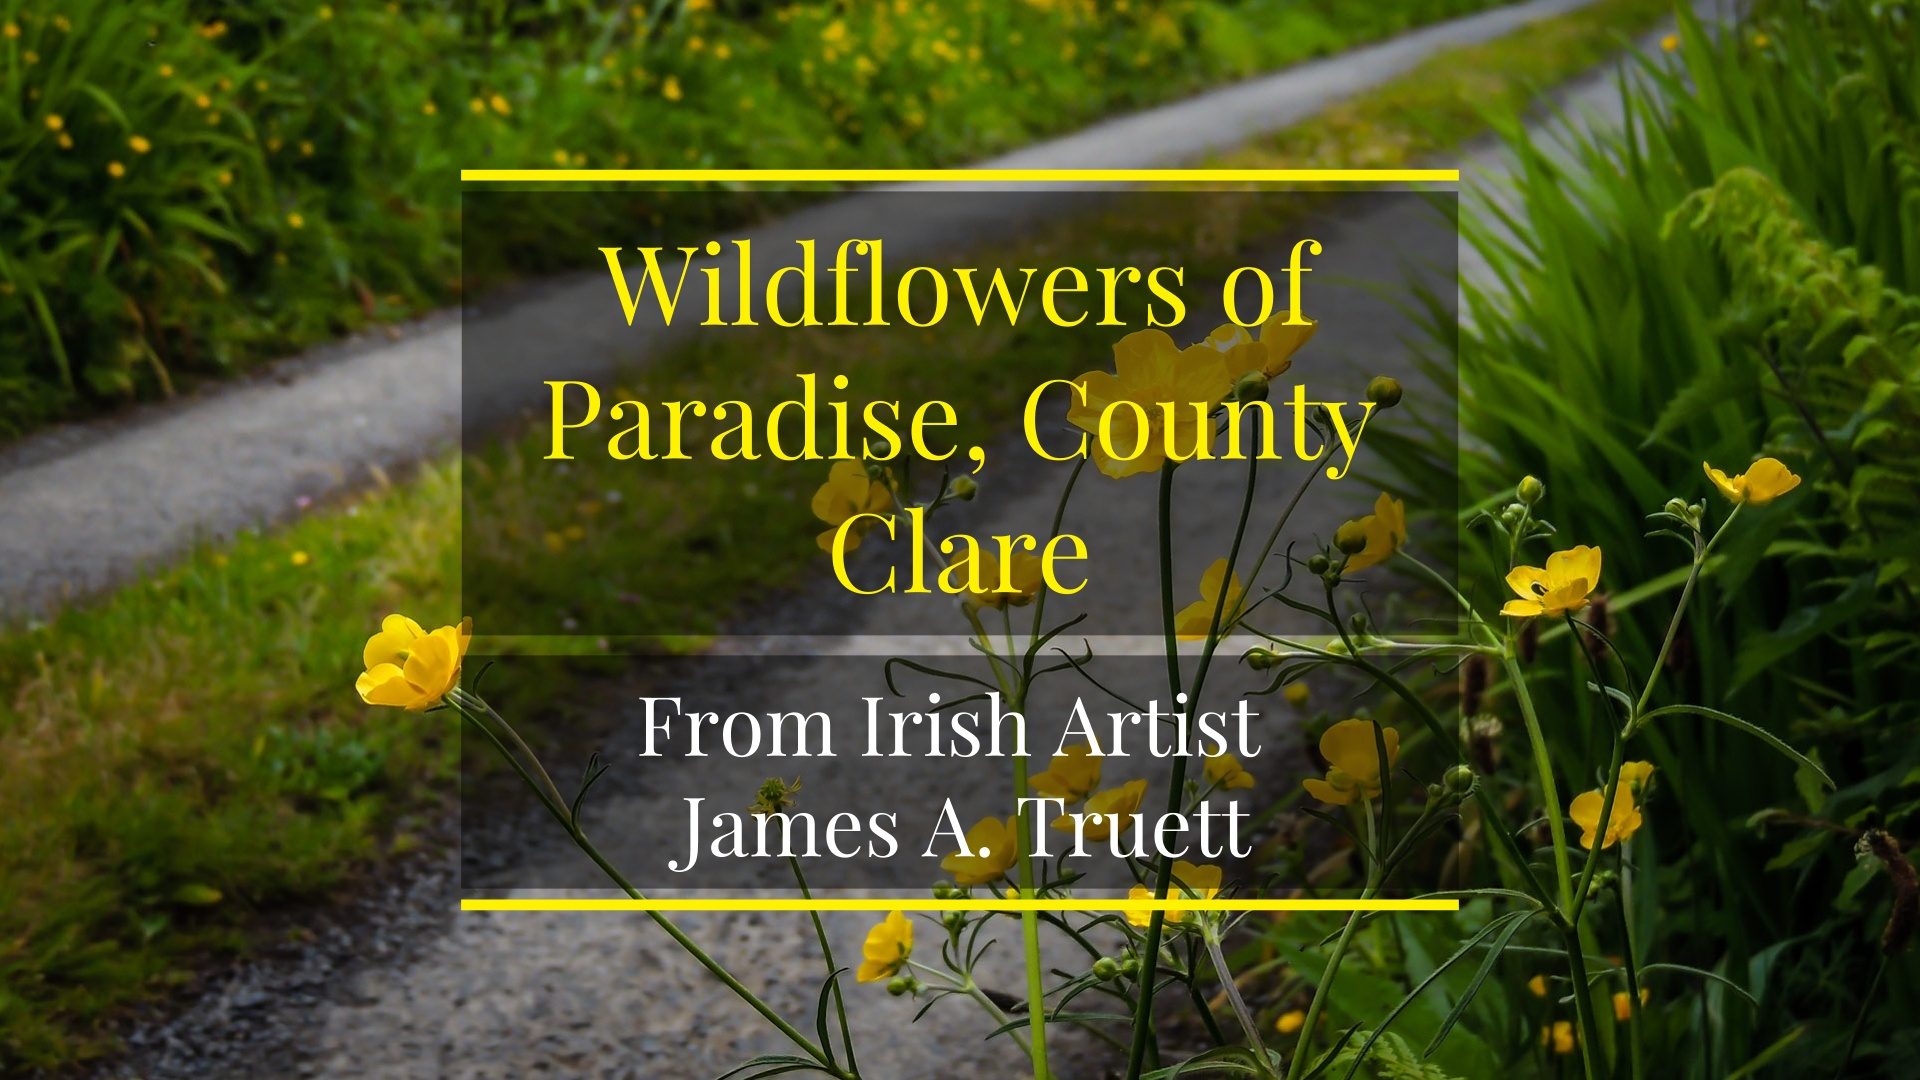 Wildflowers of Paradise, County Clare